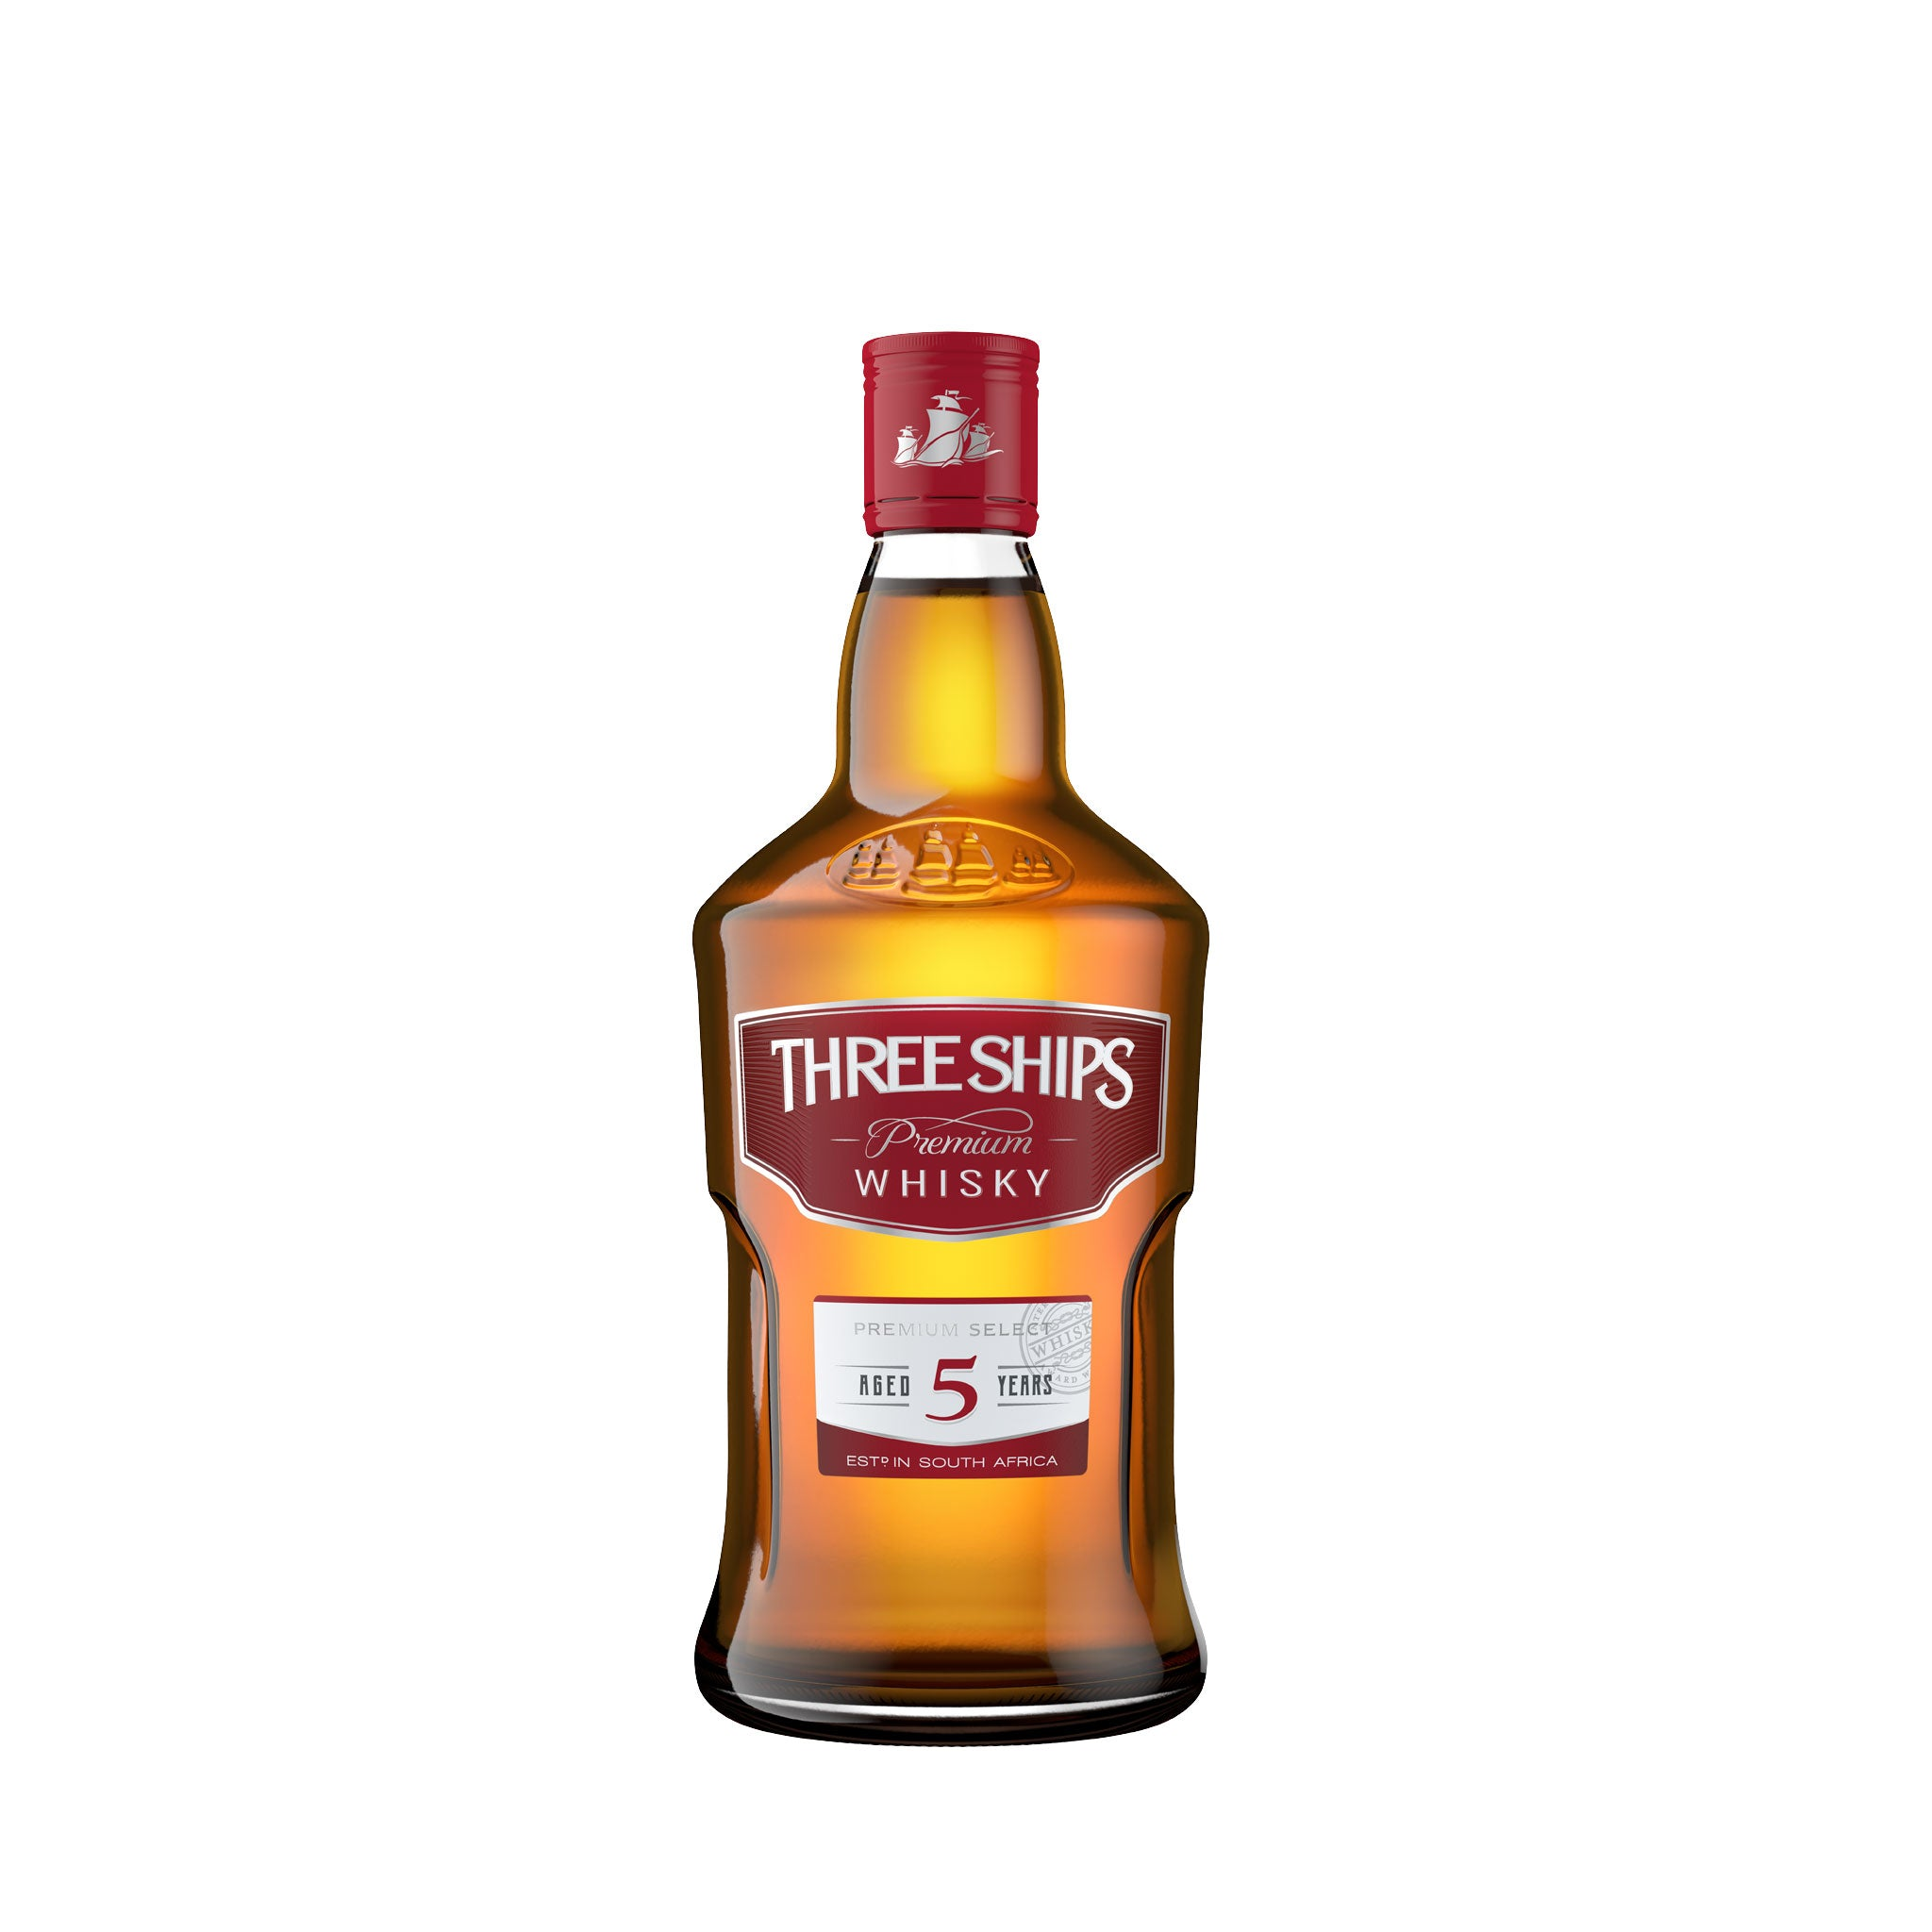 Three Ships Whisky Premium Select 5 year old